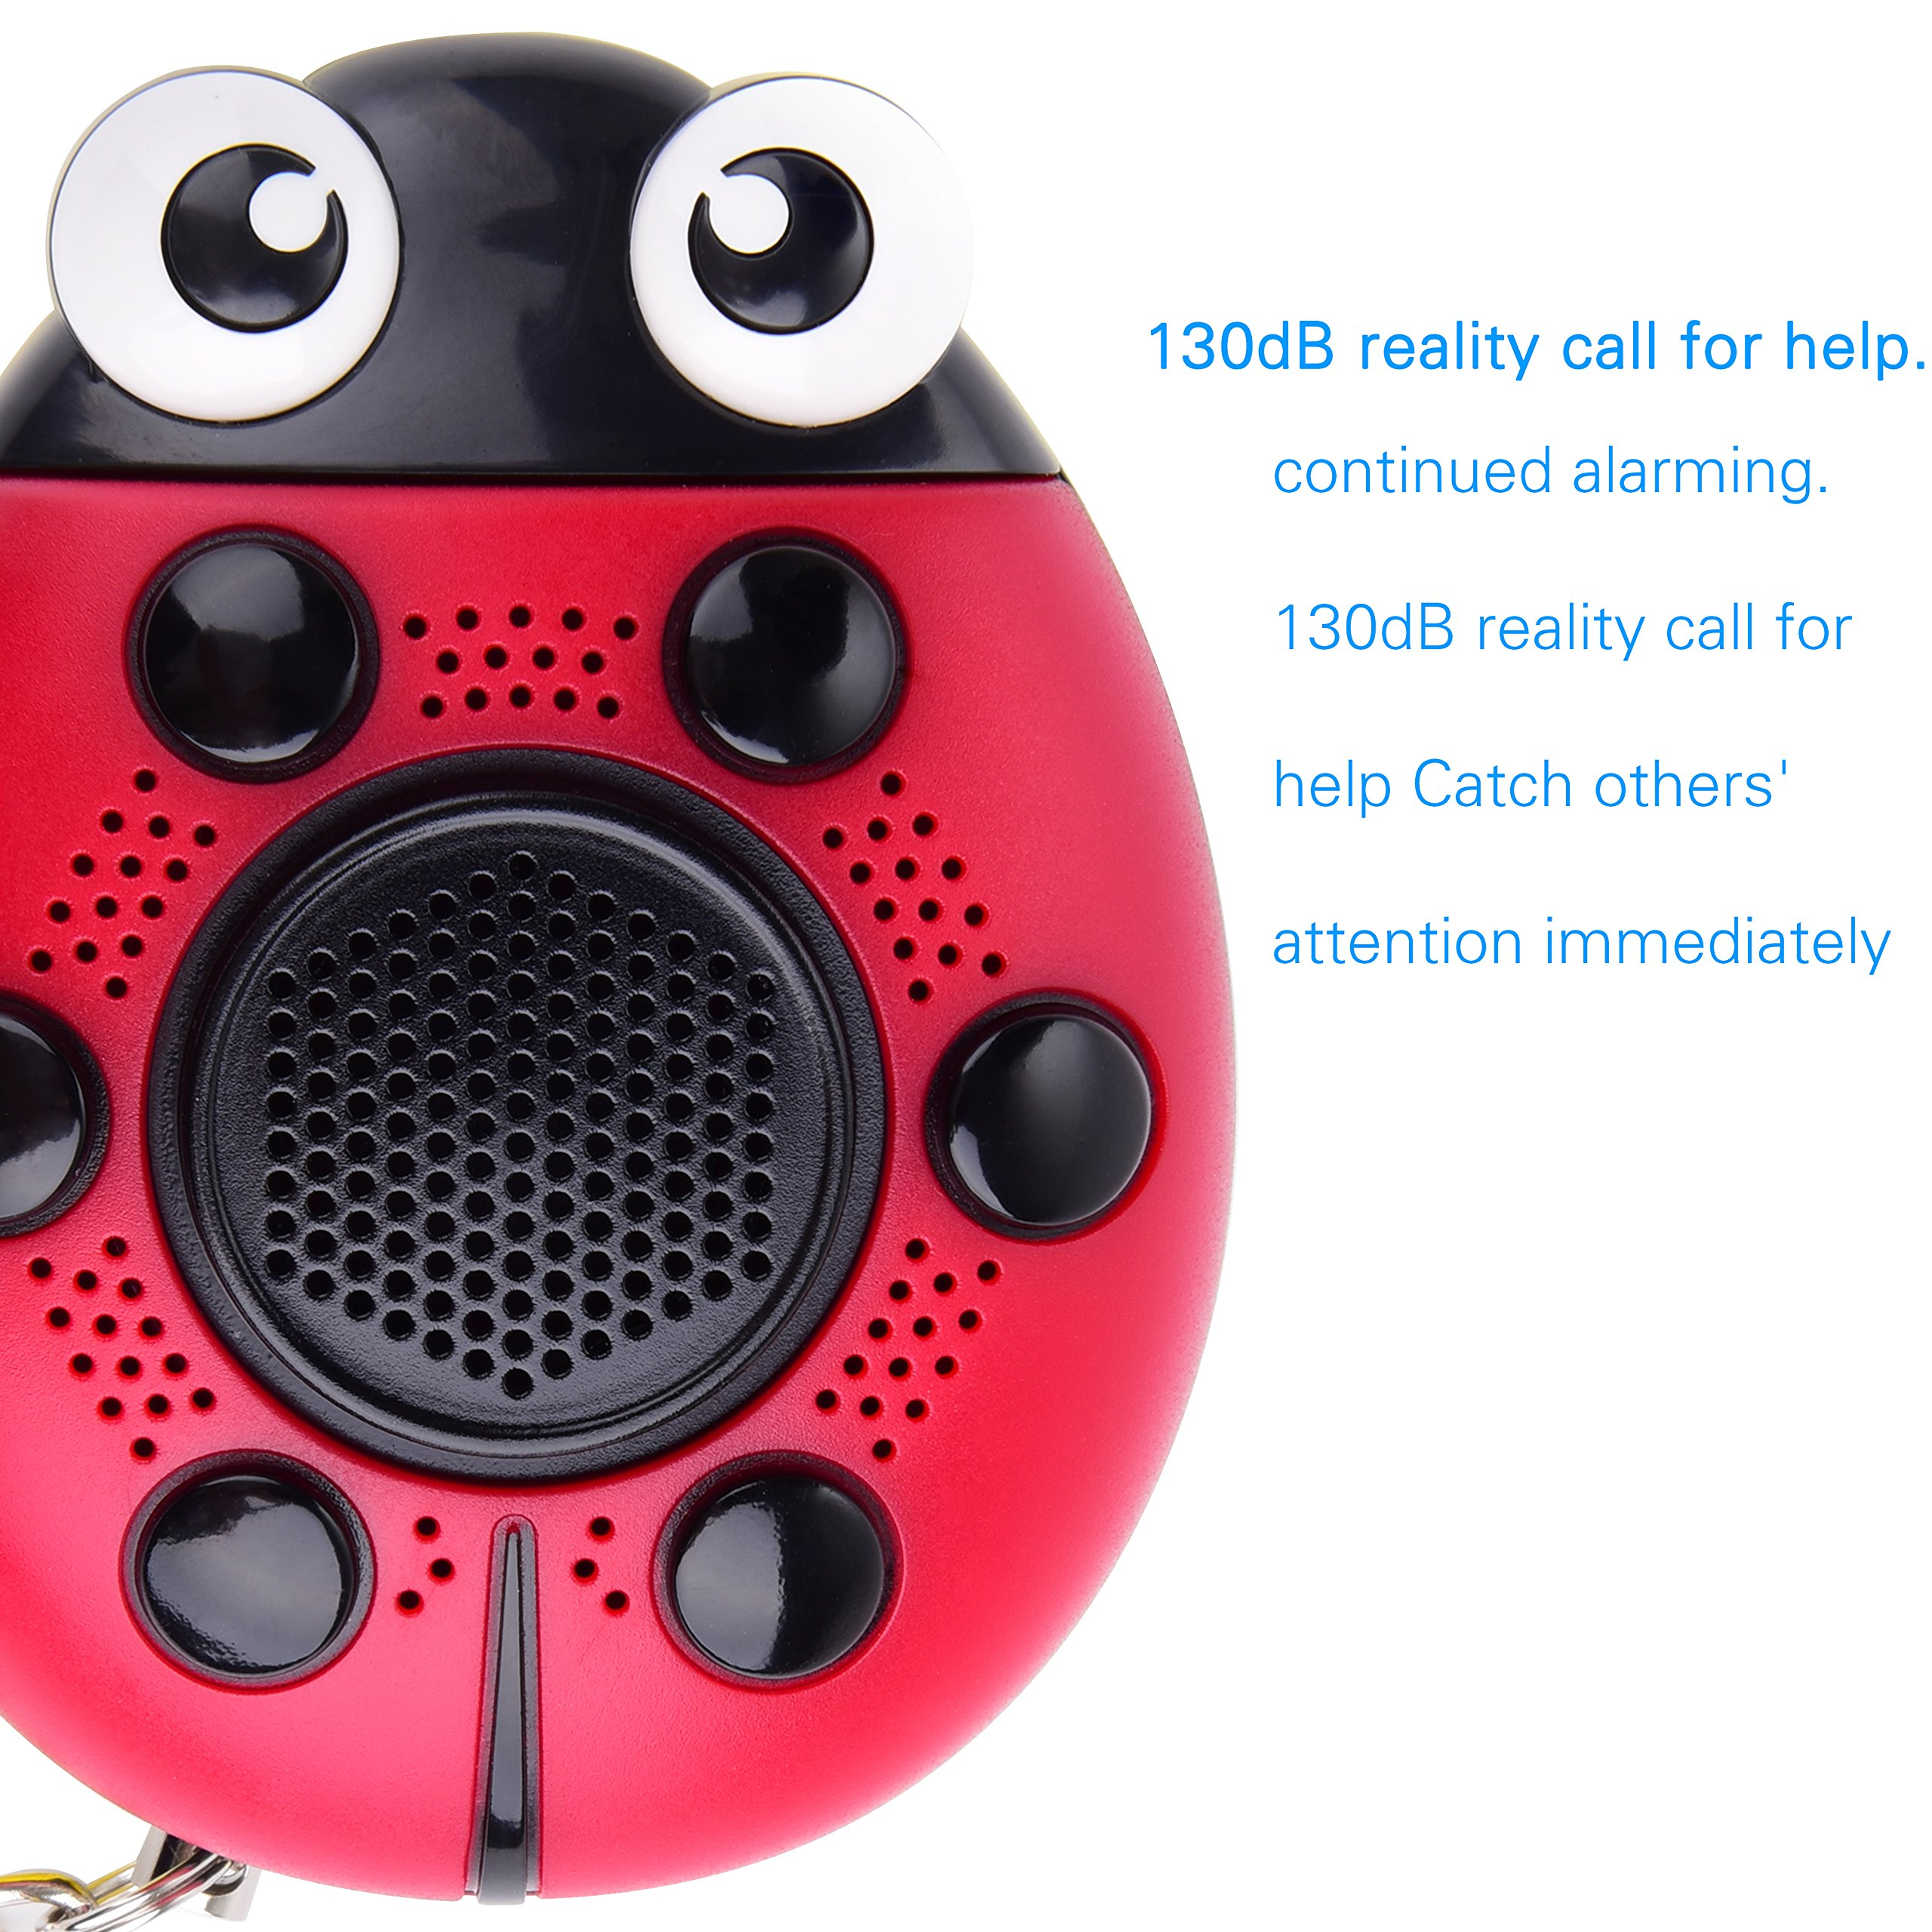 iDaye 130DB SOS with siren song voice Ladybug Emergency Personal alarm keychain,Protection Device with colorful flash work for kids/elderlies/owls and adults,Used as a speaker or electric torch. by iDaye (Image #4)